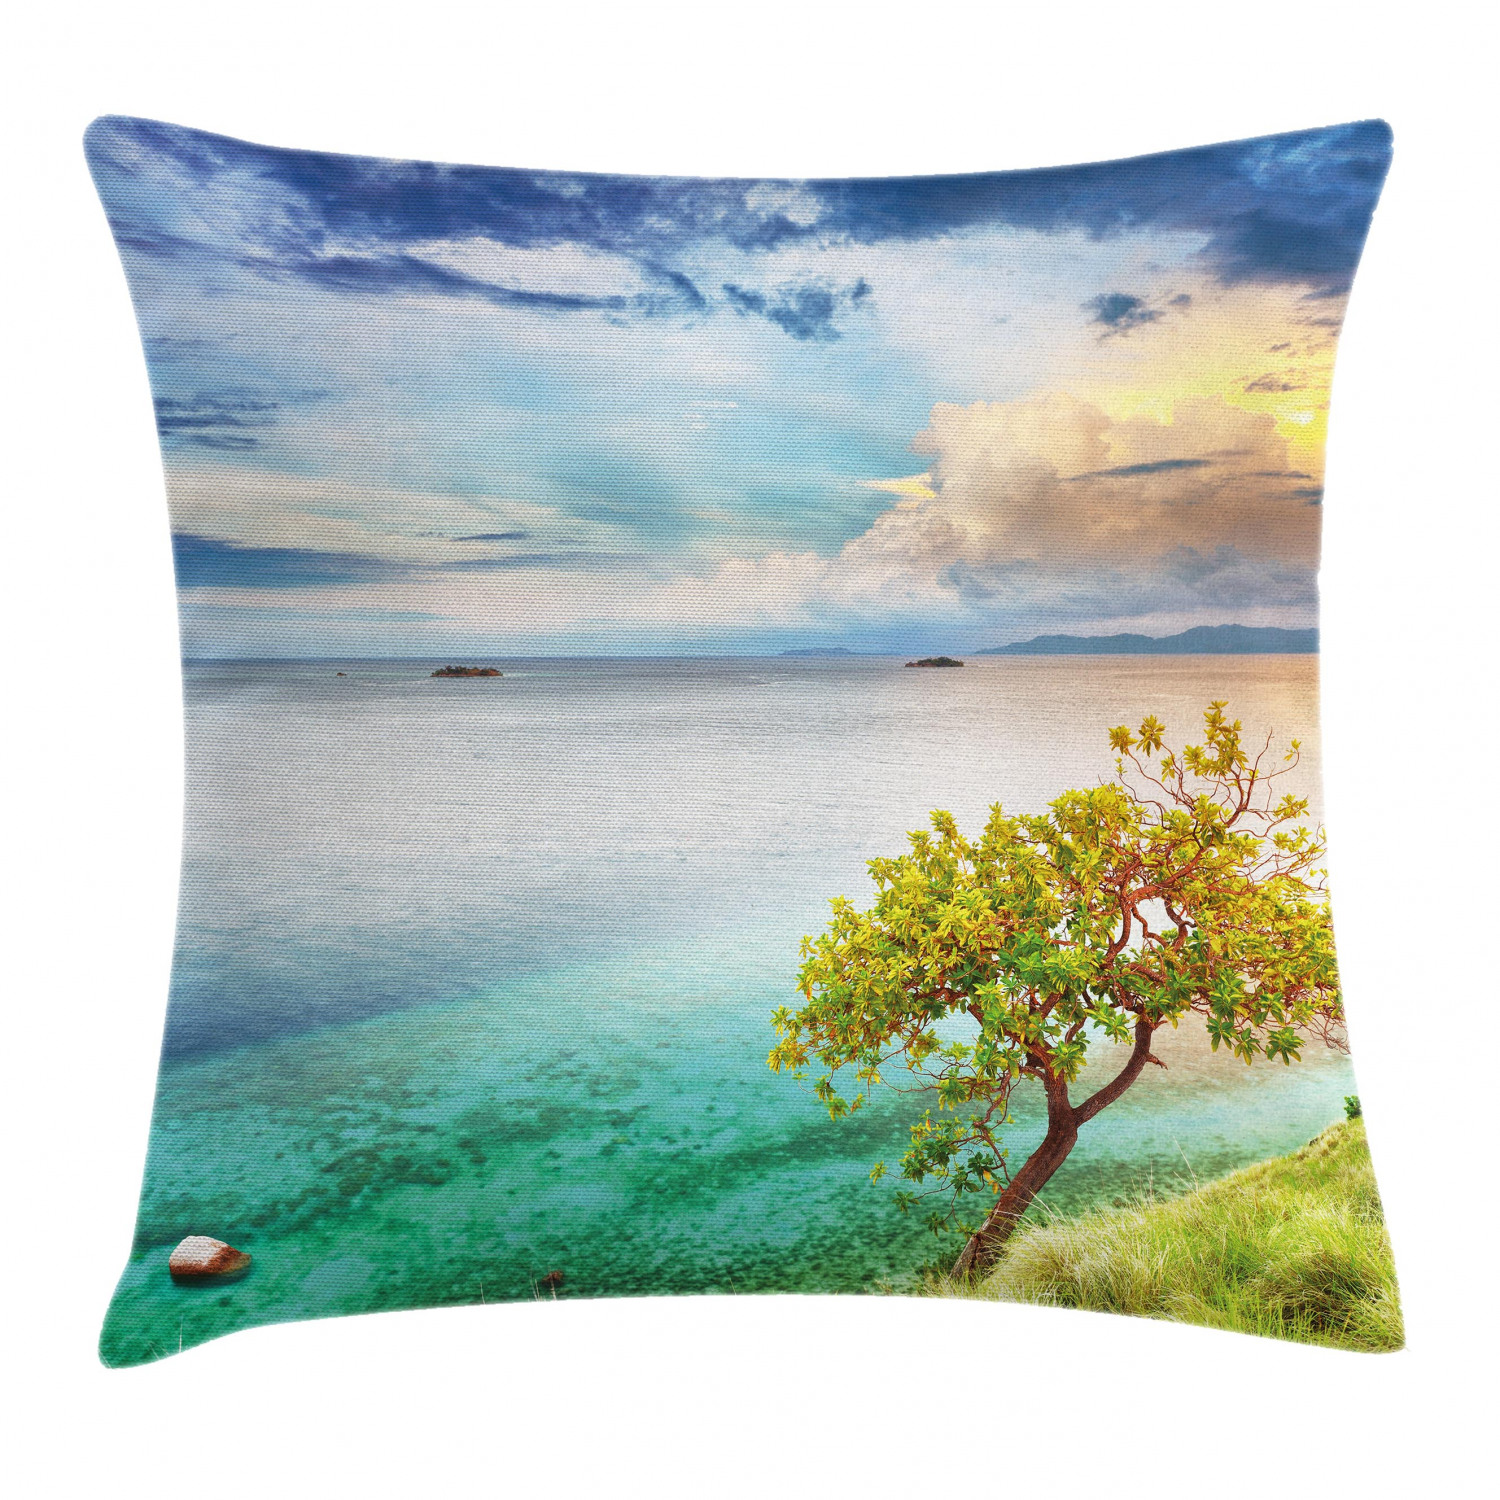 Scenery Throw Pillow Cushion Cover Sea Wiev Landscape Sunset Dawn Beach Abandoned Island Art Print Image Decorative Square Accent Pillow Case 20 X 20 Inches Aqua Turquoise And Green By Ambesonne